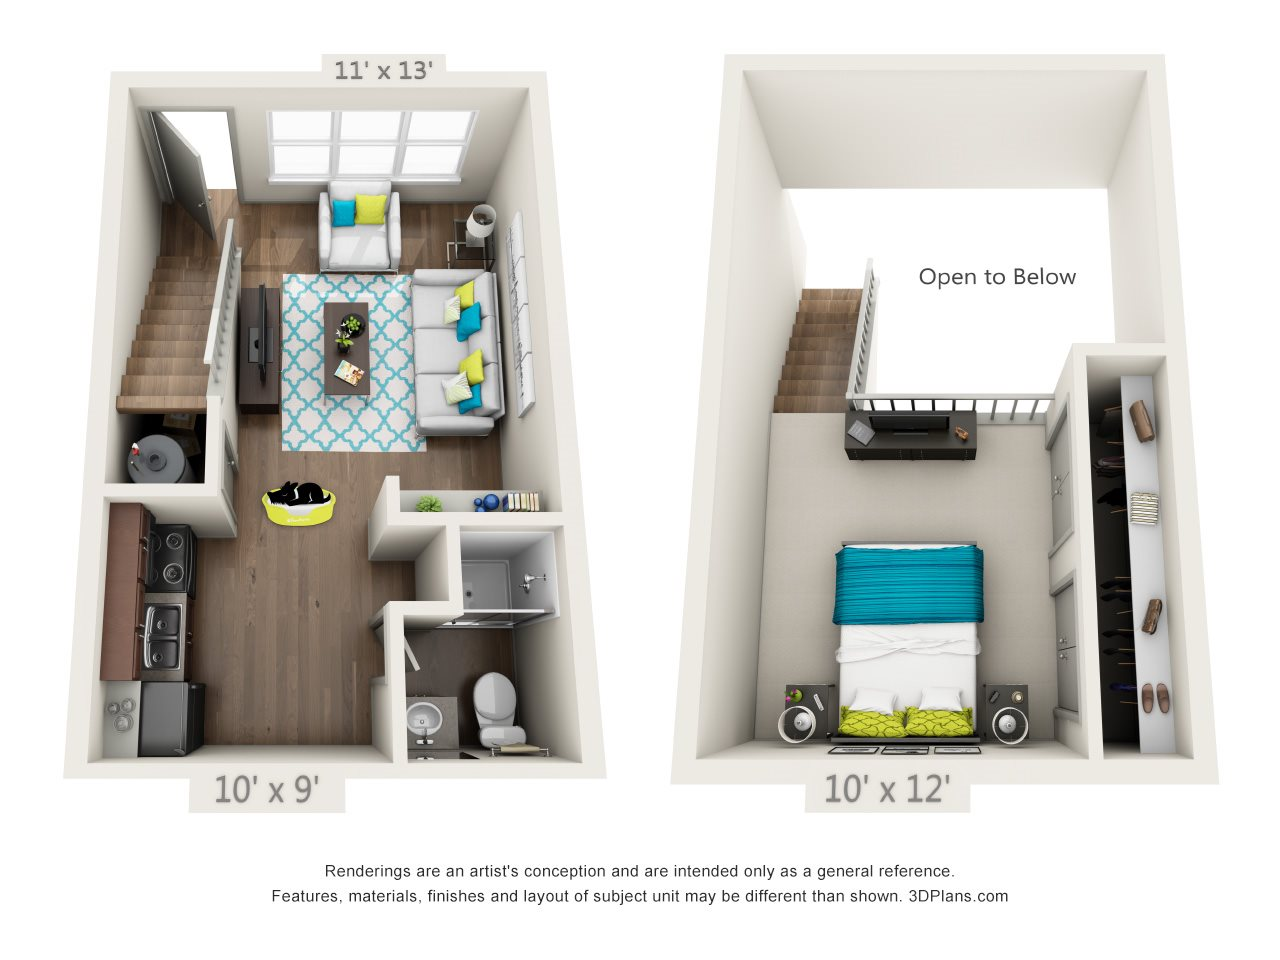 1 Bedroom Loft - Refreshed Floor Plan 2